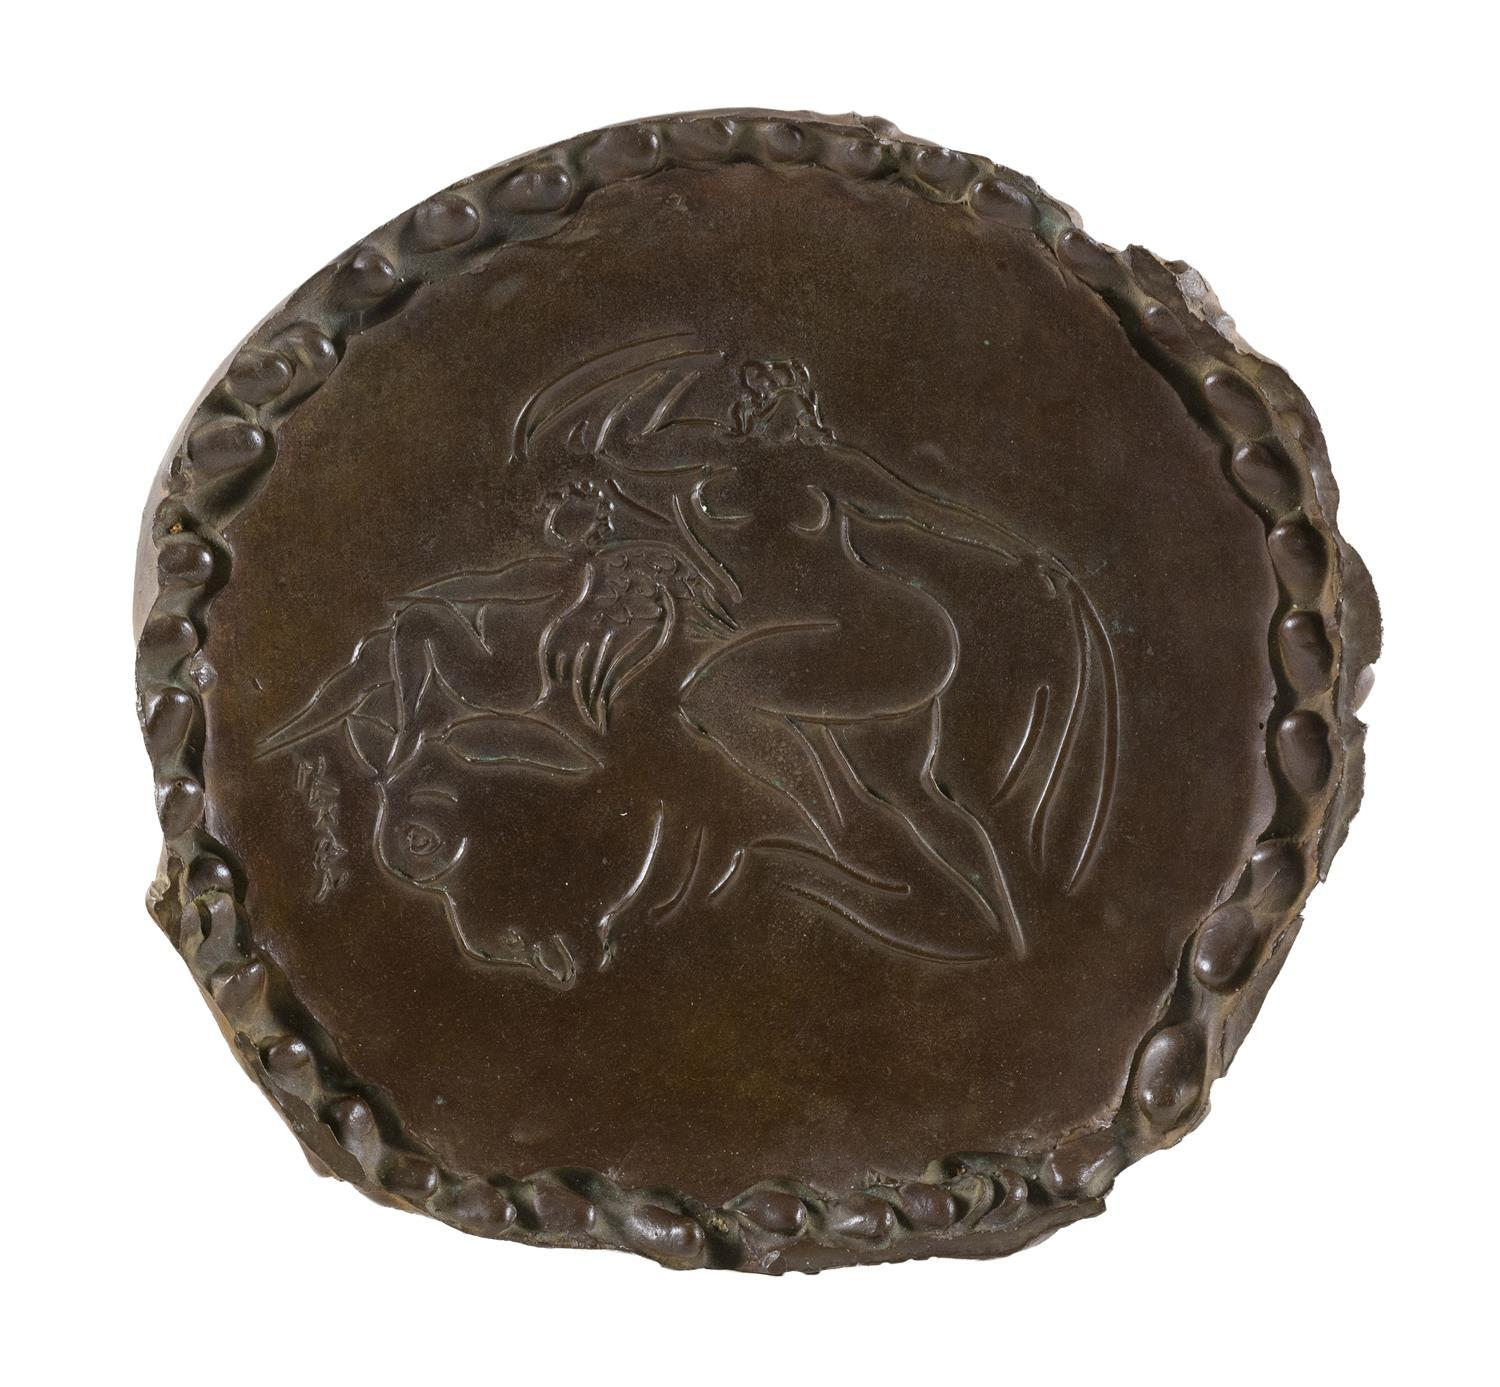 "REUBEN NAKIAN, New York/Connecticut, 1897-1986, Europa and the Bull., Bronze, diameter 17""."